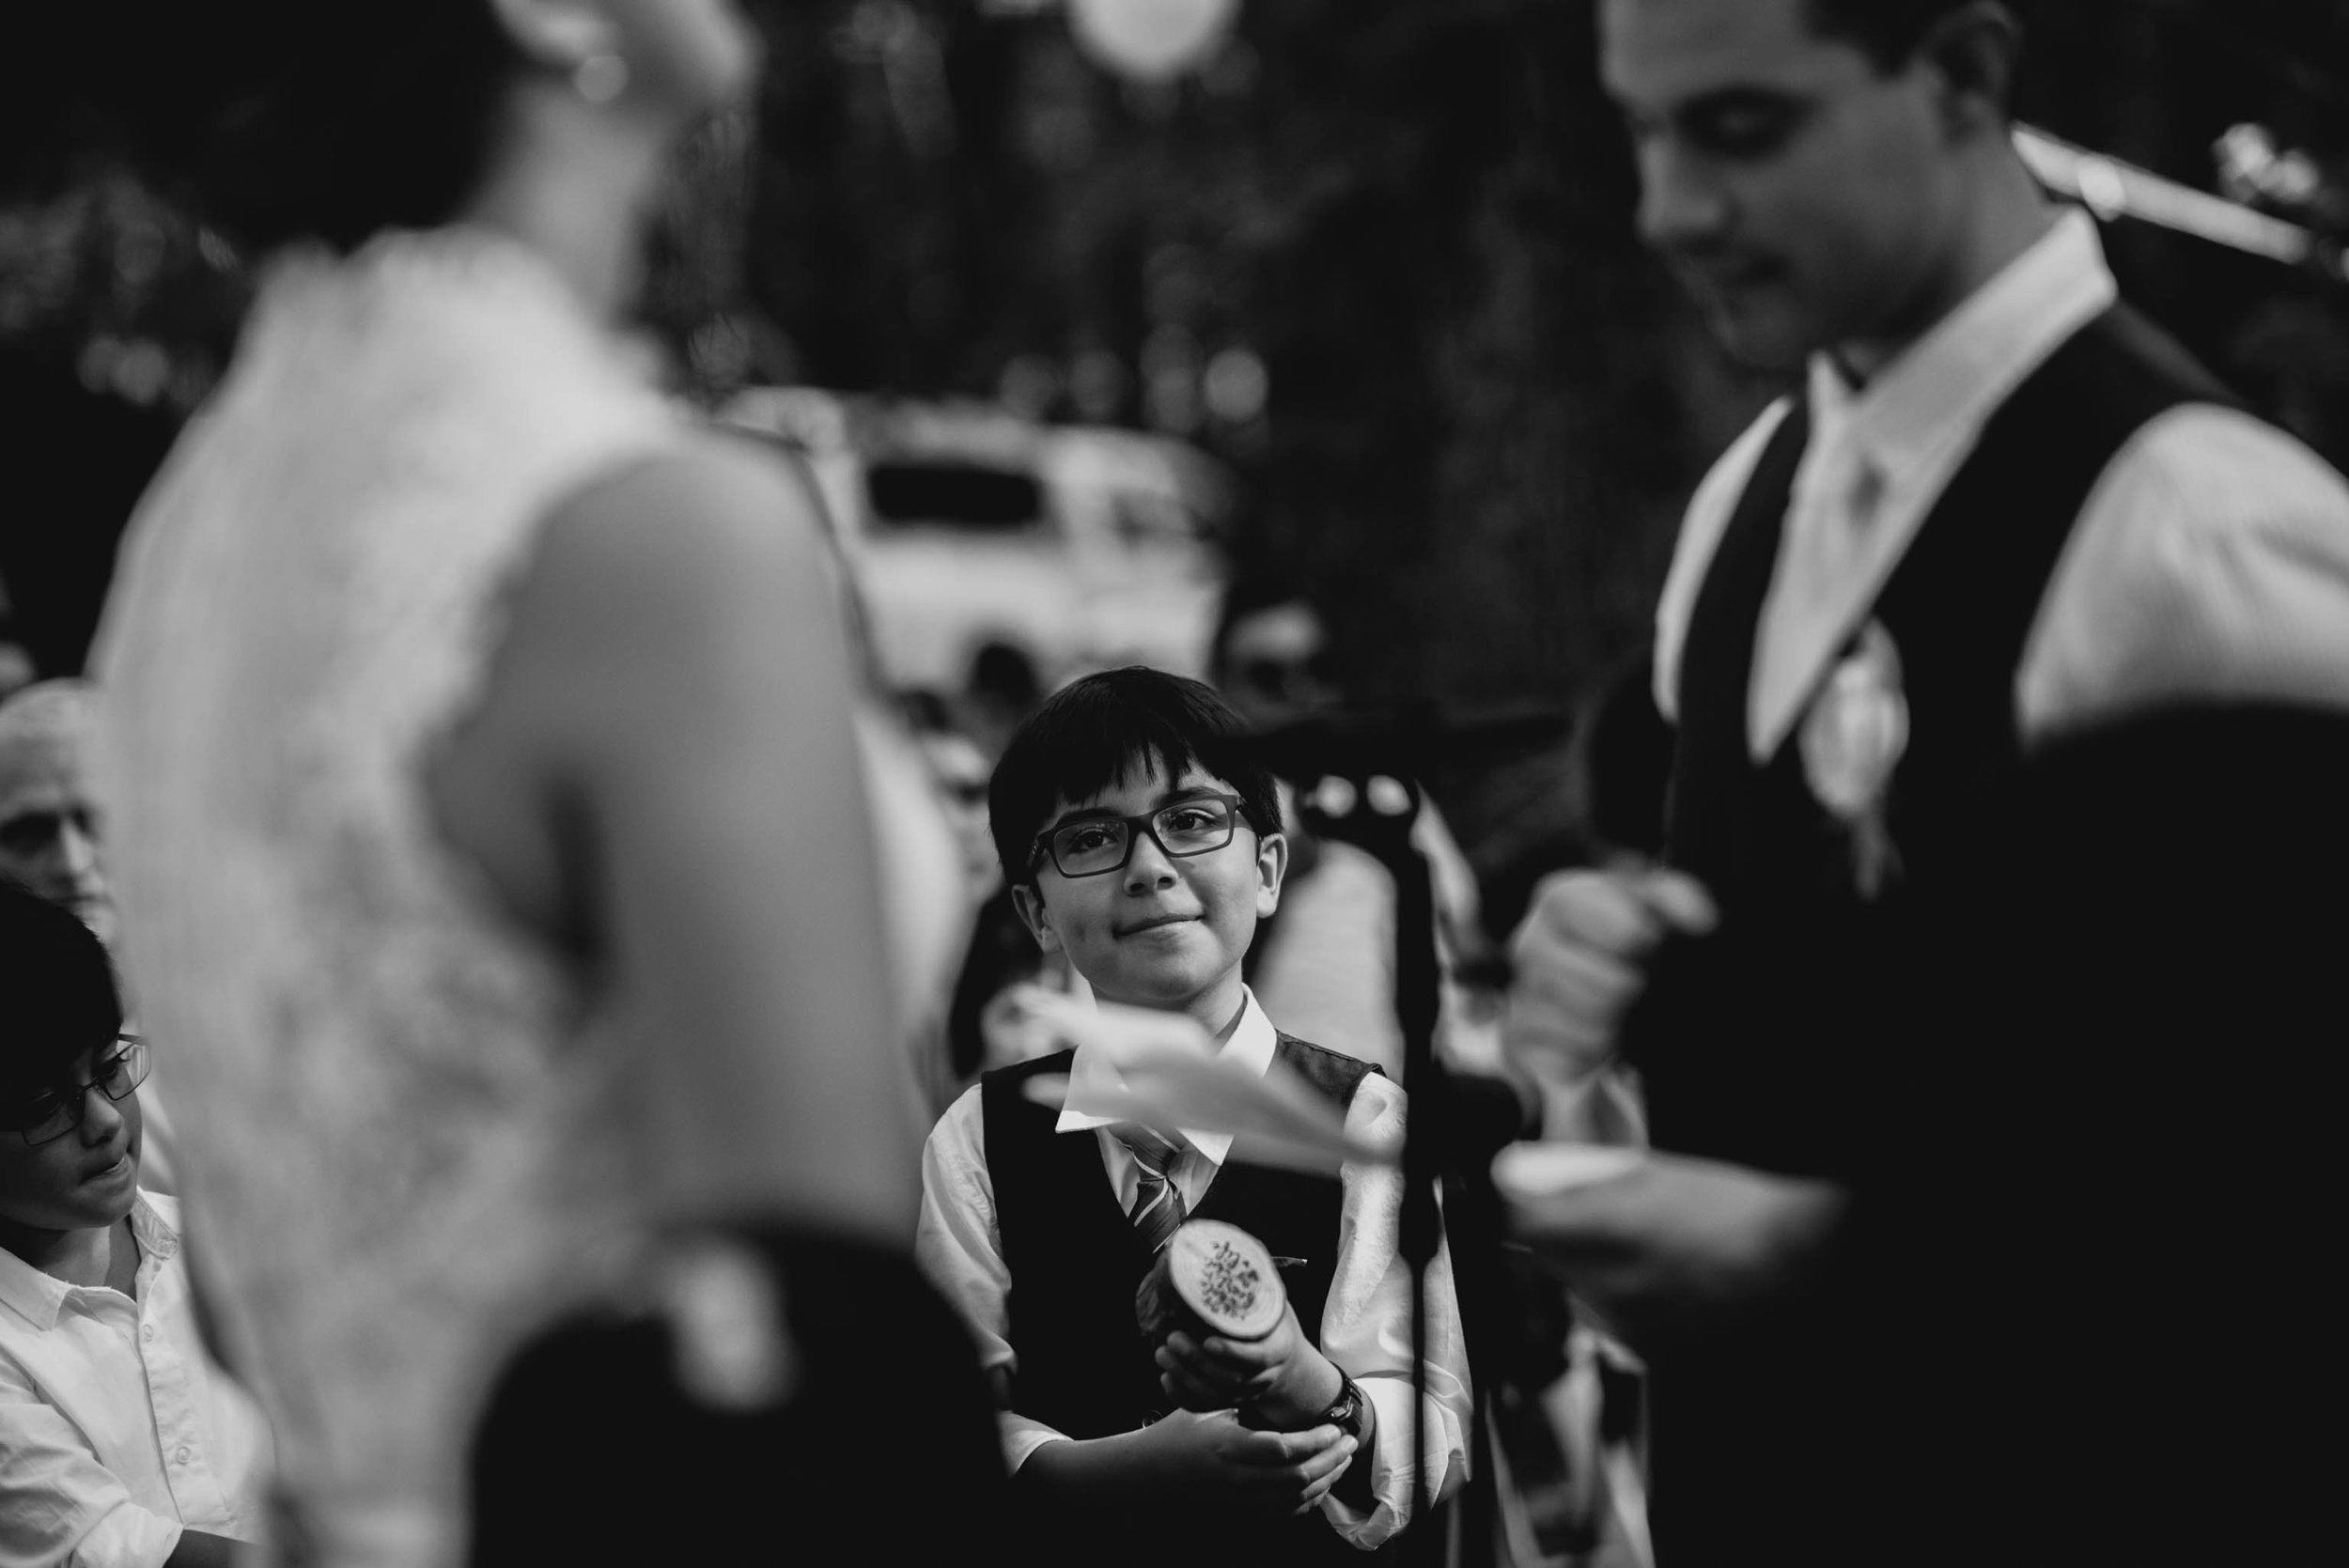 groom's nephew looking on and smiling during wedding ceremony